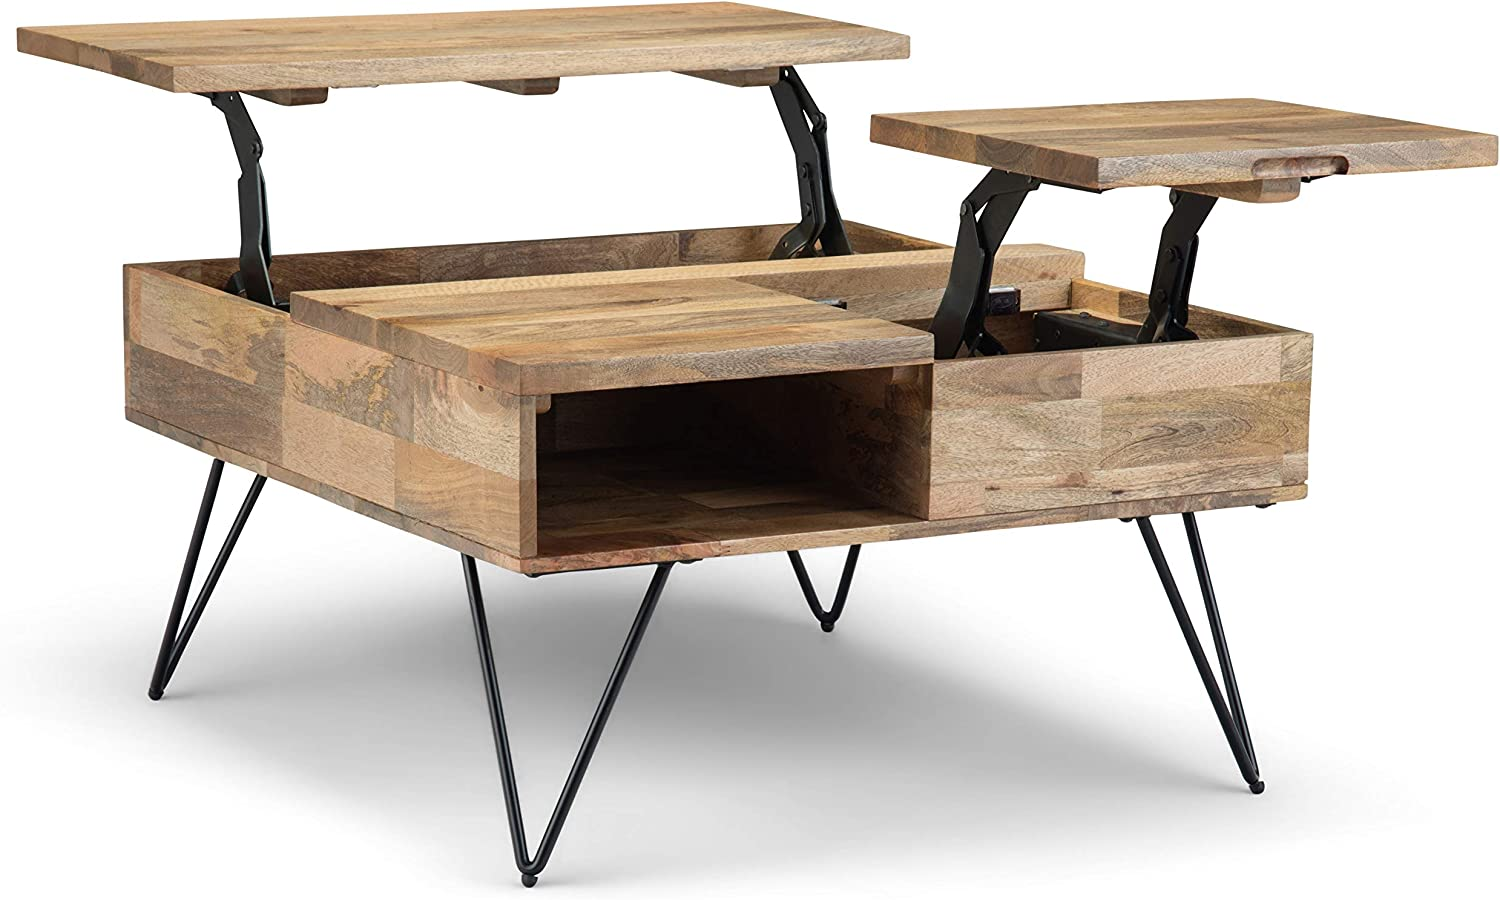 SIMPLIHOME Hunter SOLID MANGO WOOD and Metal 32 inch Wide Square Industrial Contemporary Lift Top Coffee Table in Natural, for the Living Room and Family Room